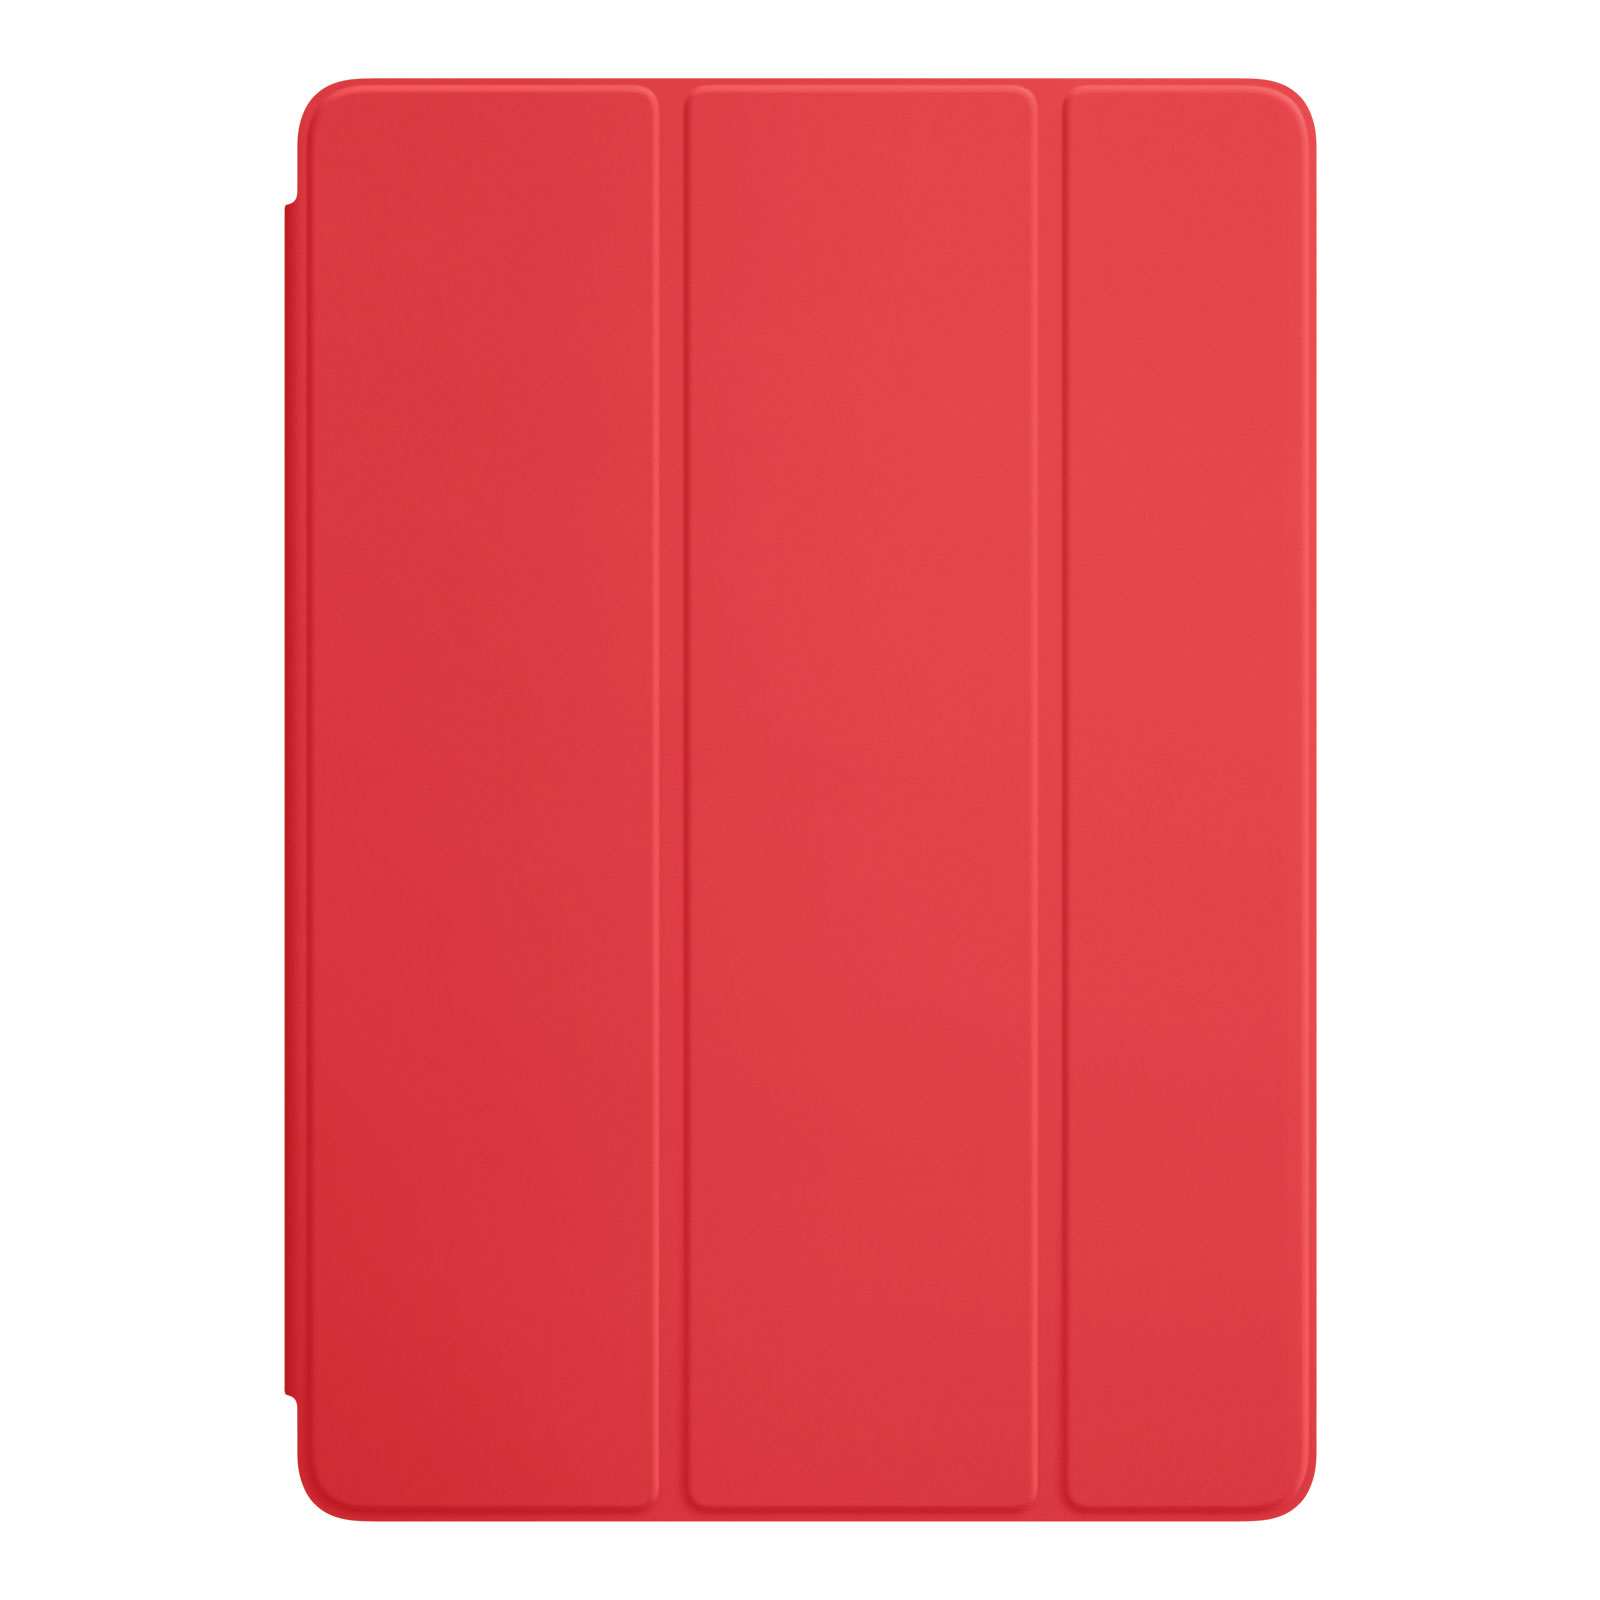 Apple iPad Smart Cover Rouge  Etui tablette Apple sur LDLCcom